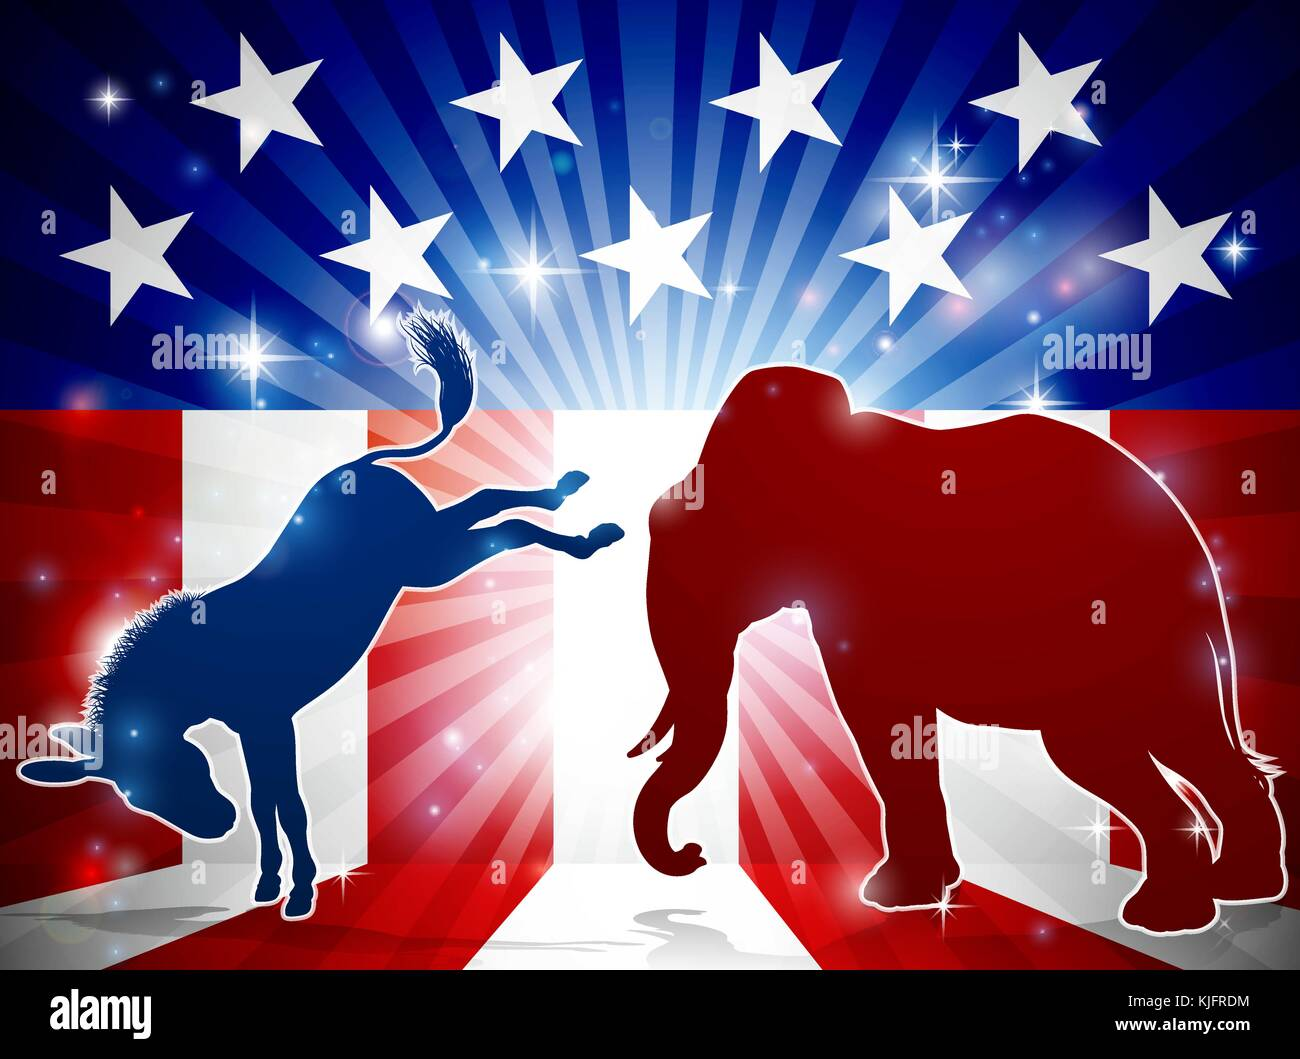 Silhouette Elephant Fighting Donkey - Stock Image